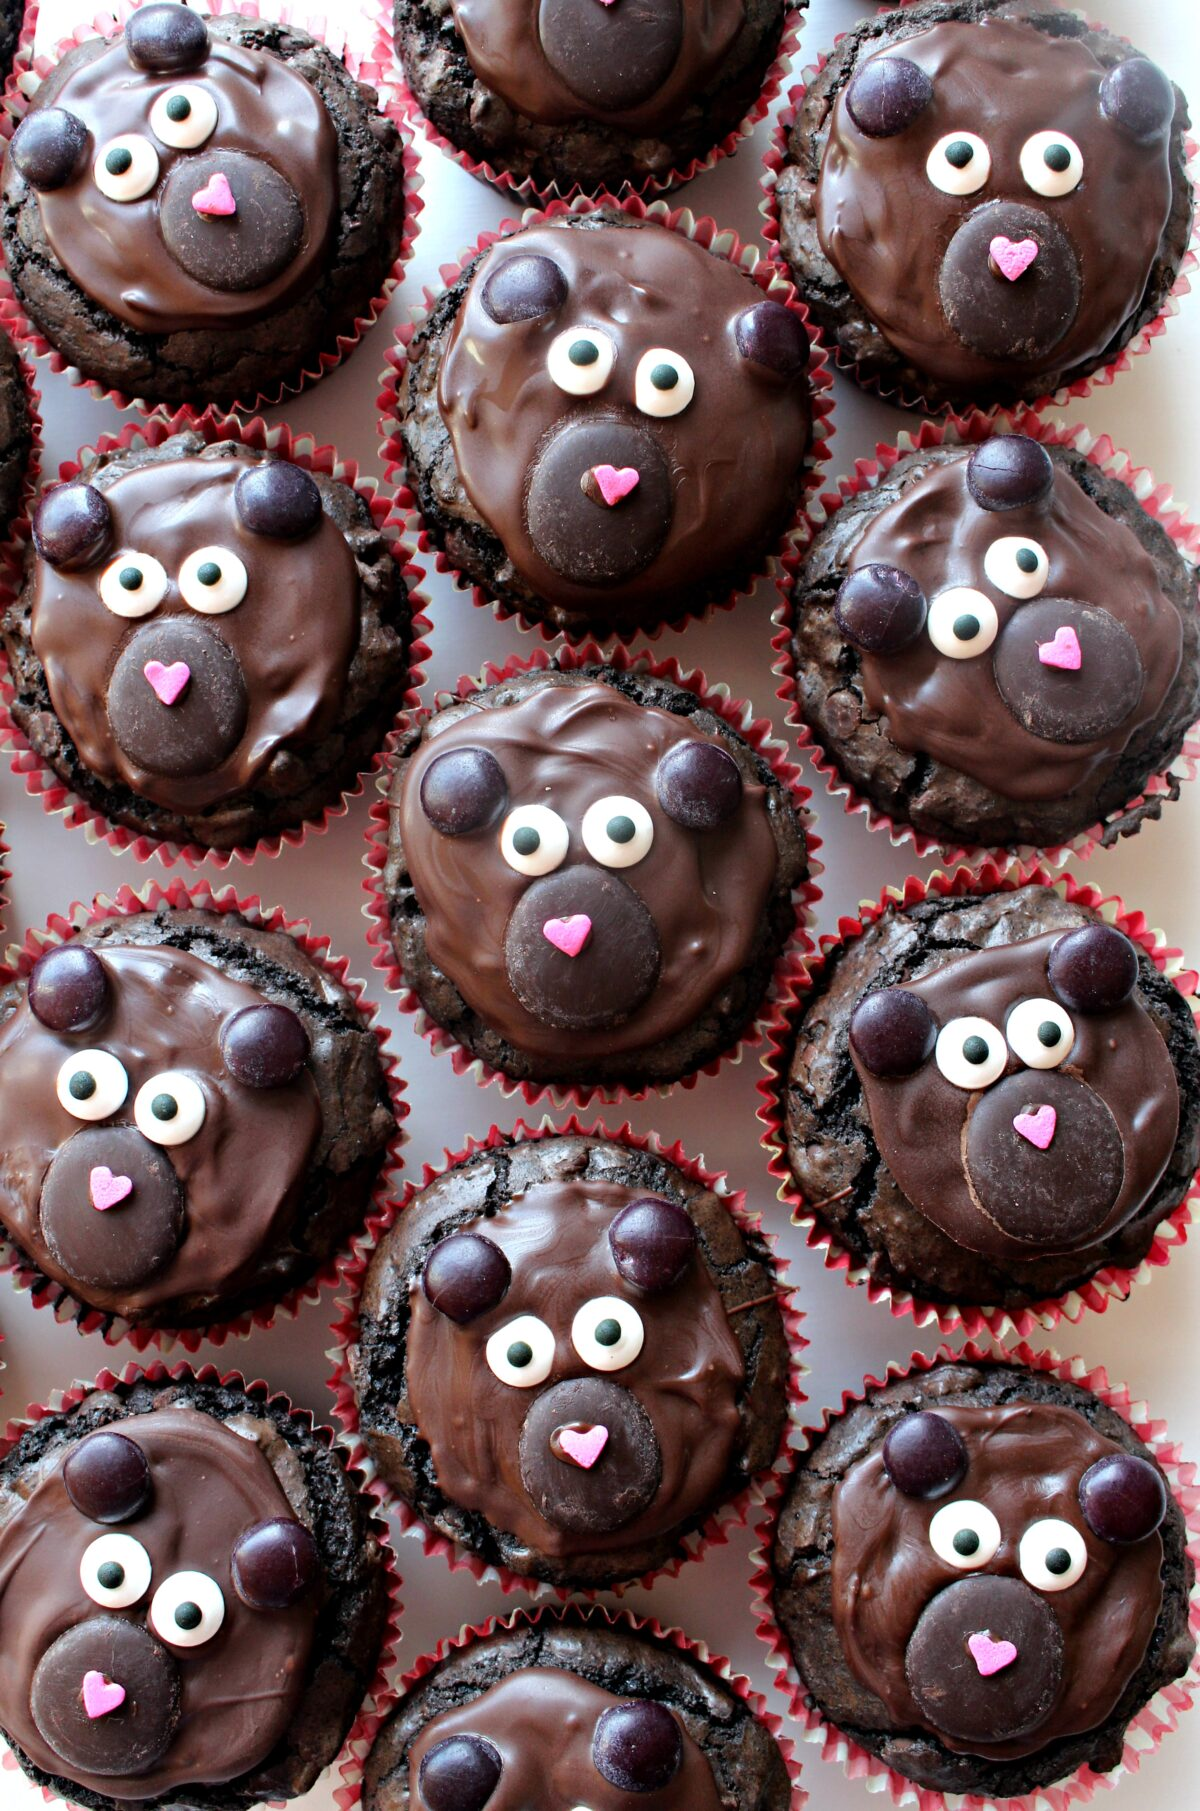 Chocolate brownie cupcakes decorated like bears.